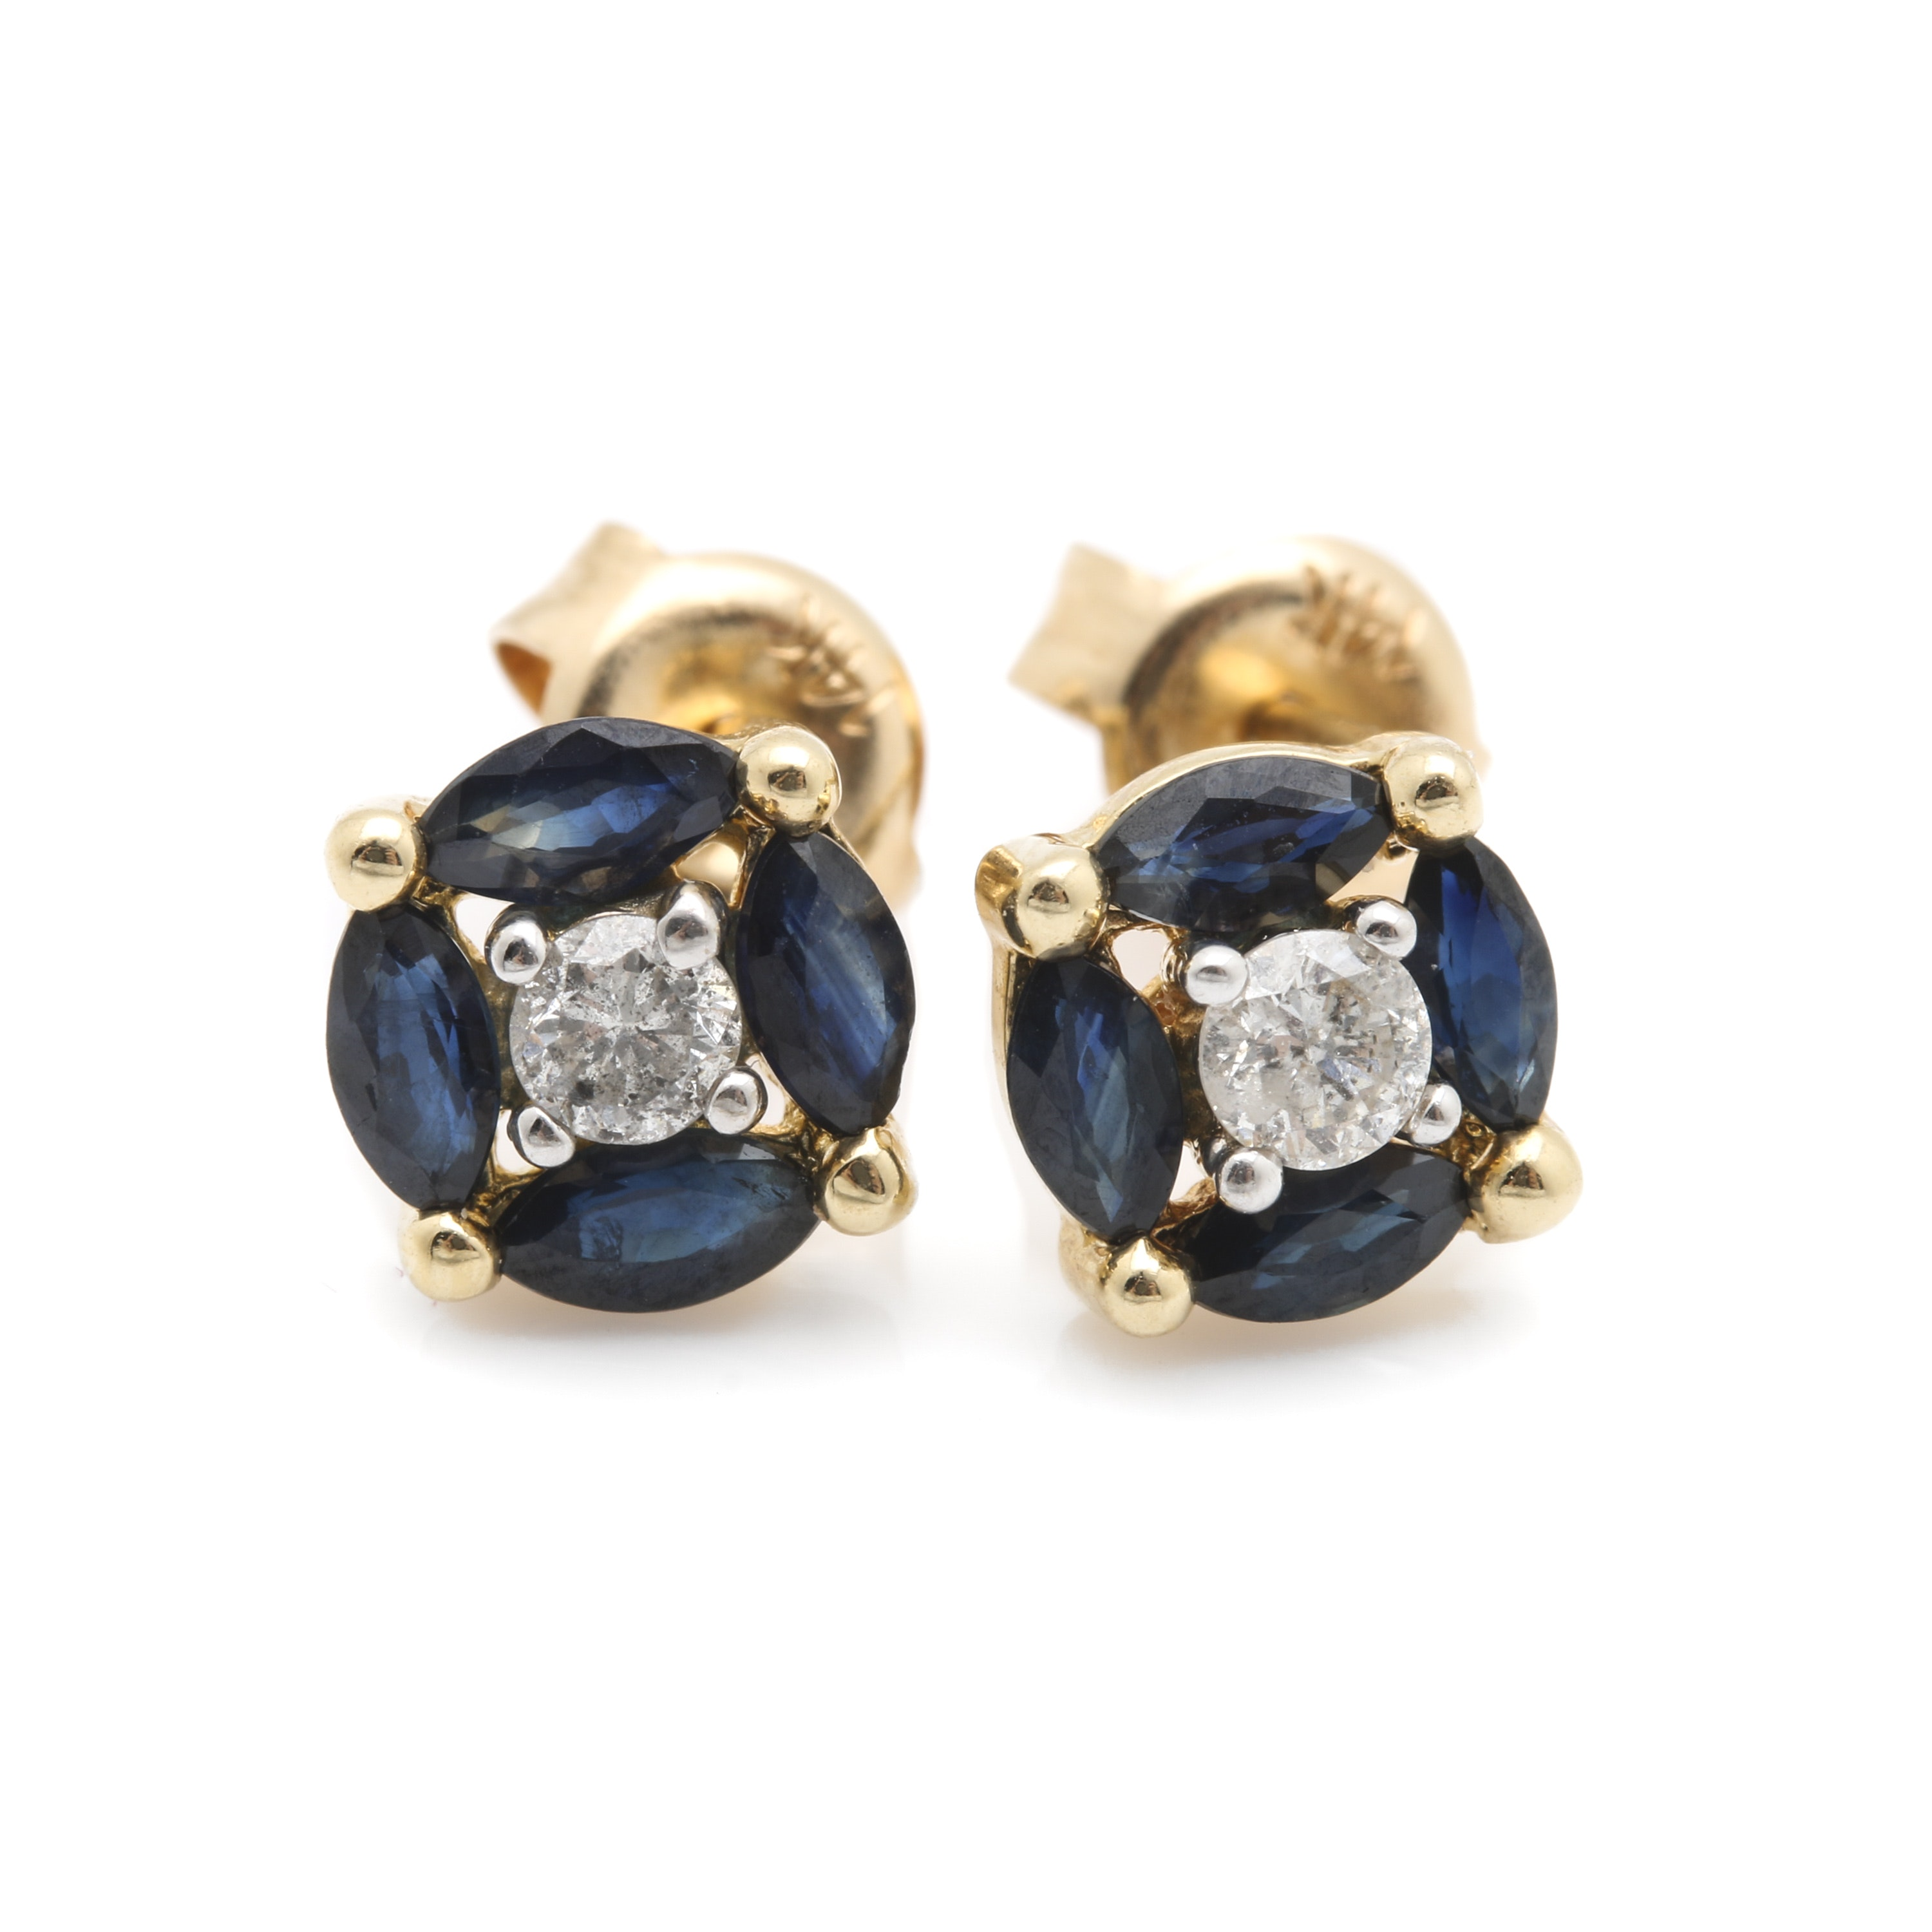 14K Yellow Gold Diamond and Sapphire Earrings